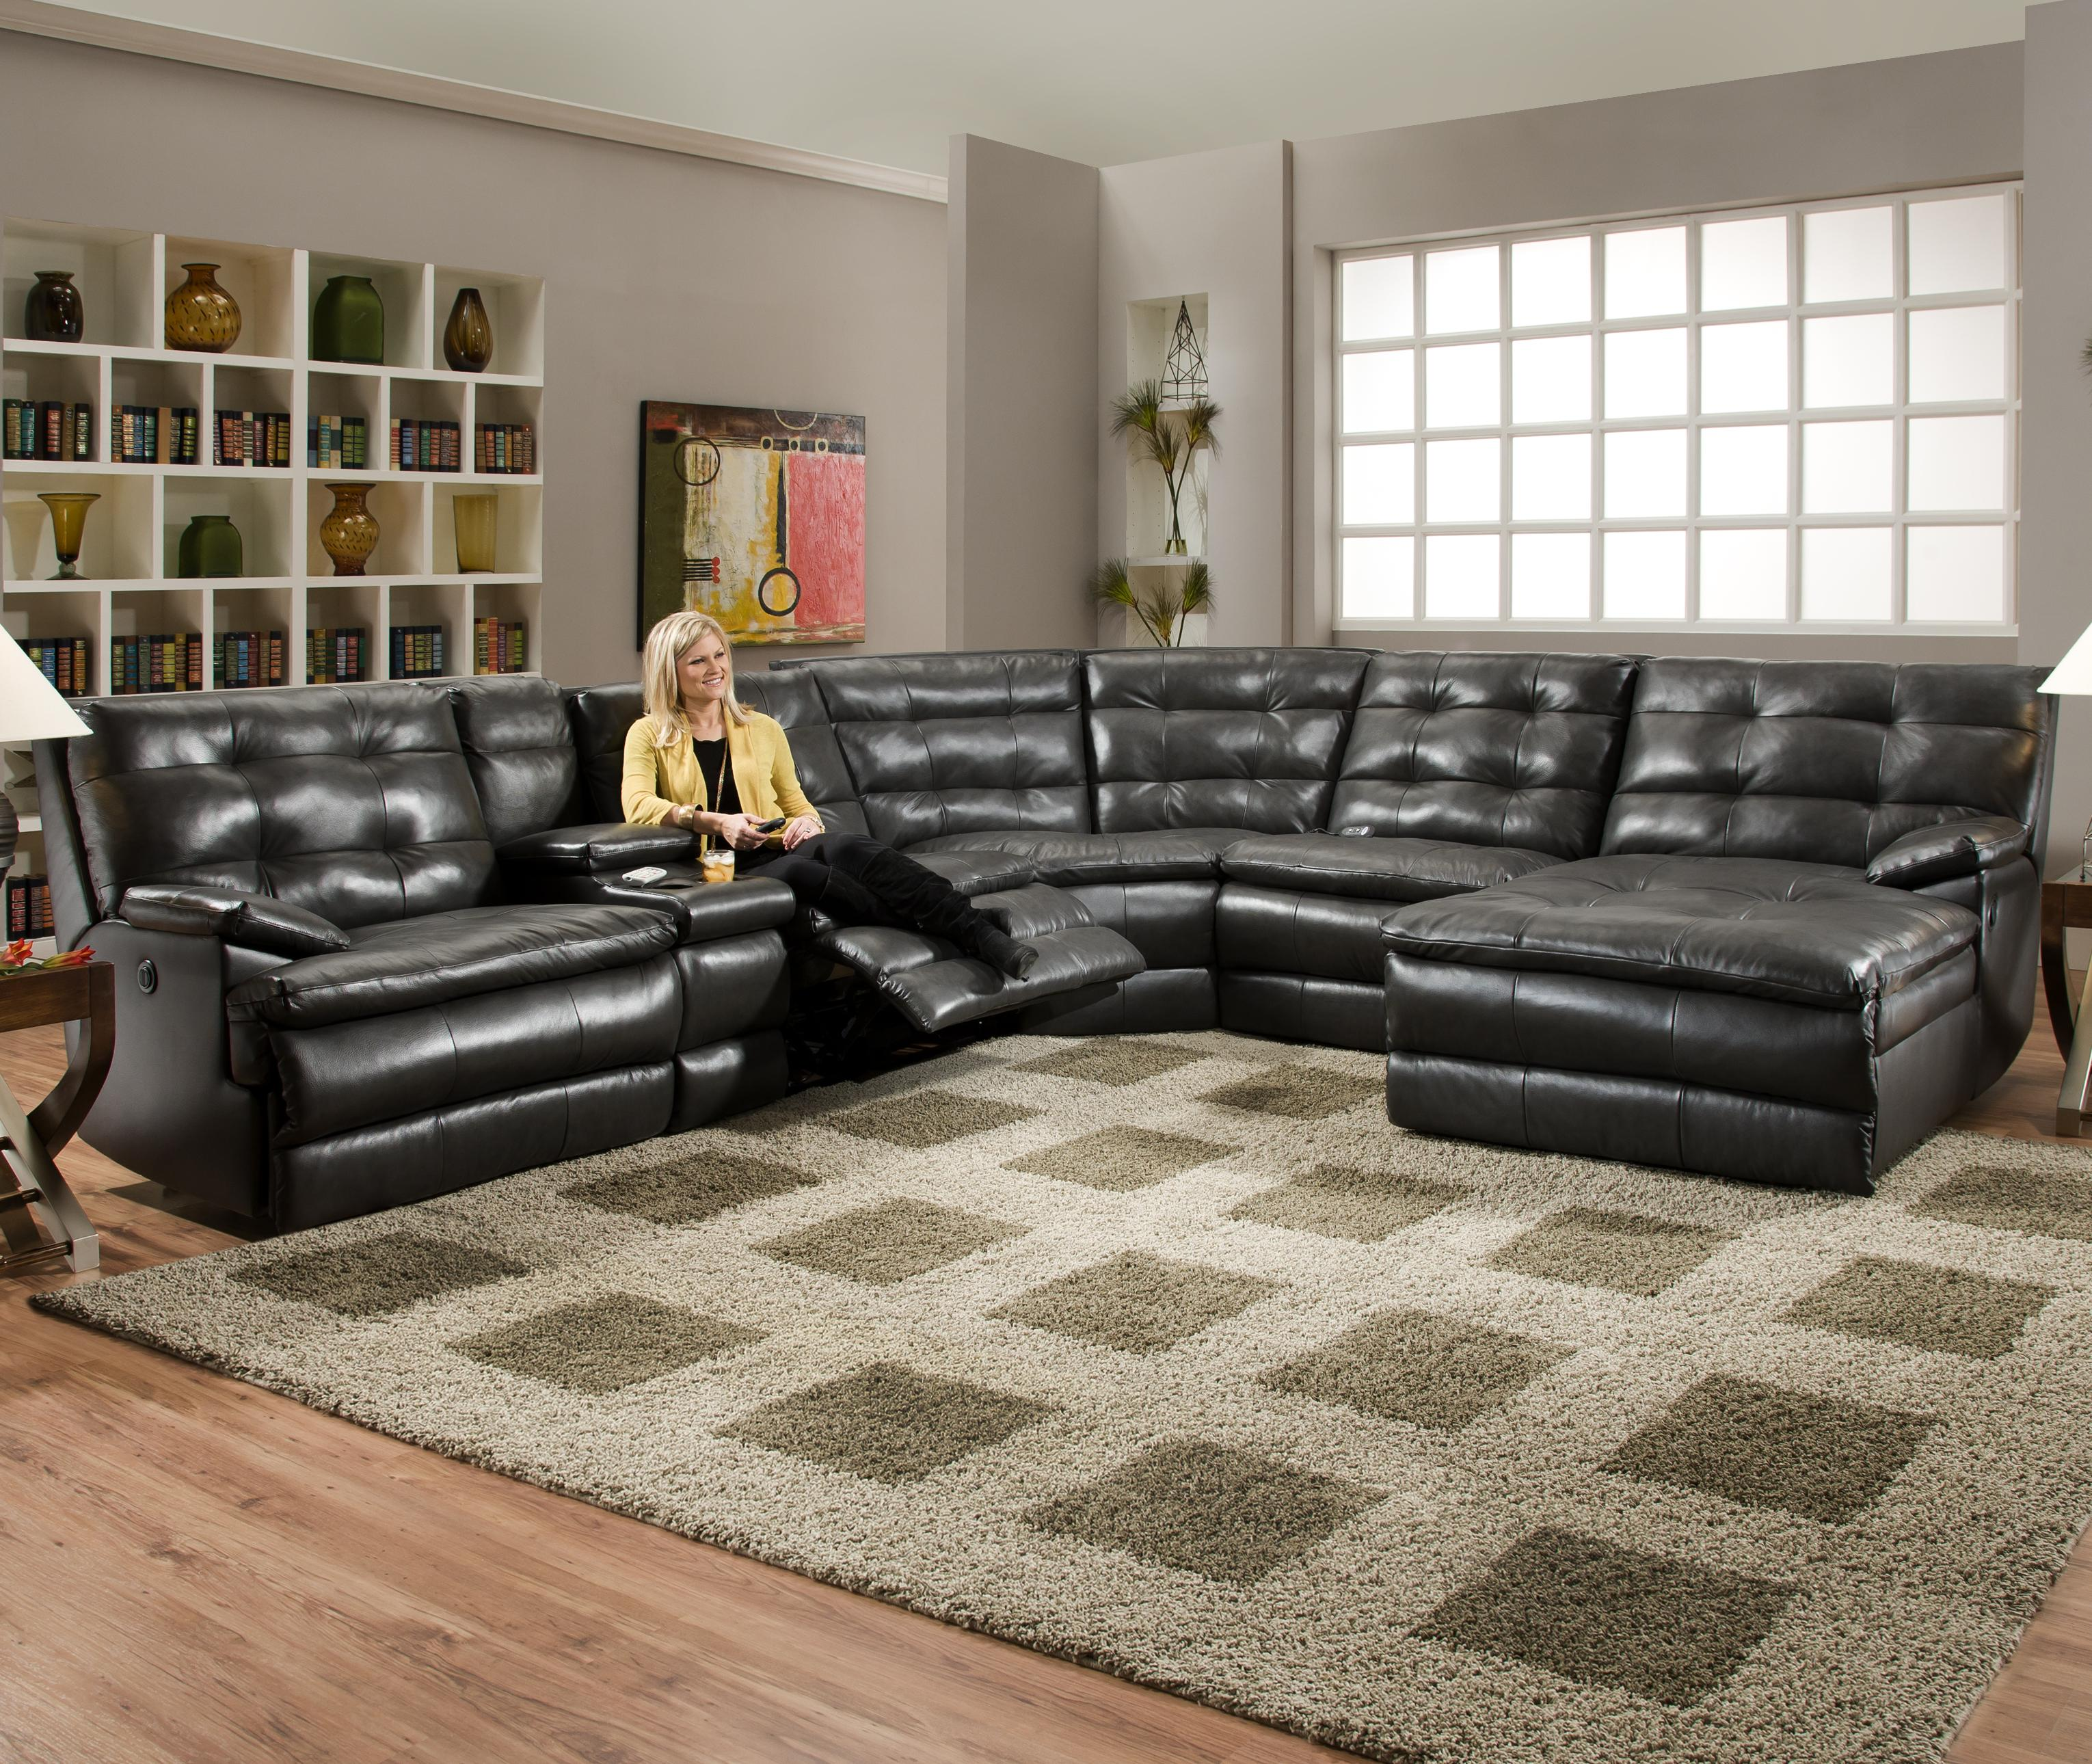 Large Sectional Sofas | Sleeper Sofa with Chaise | Couches for Cheap